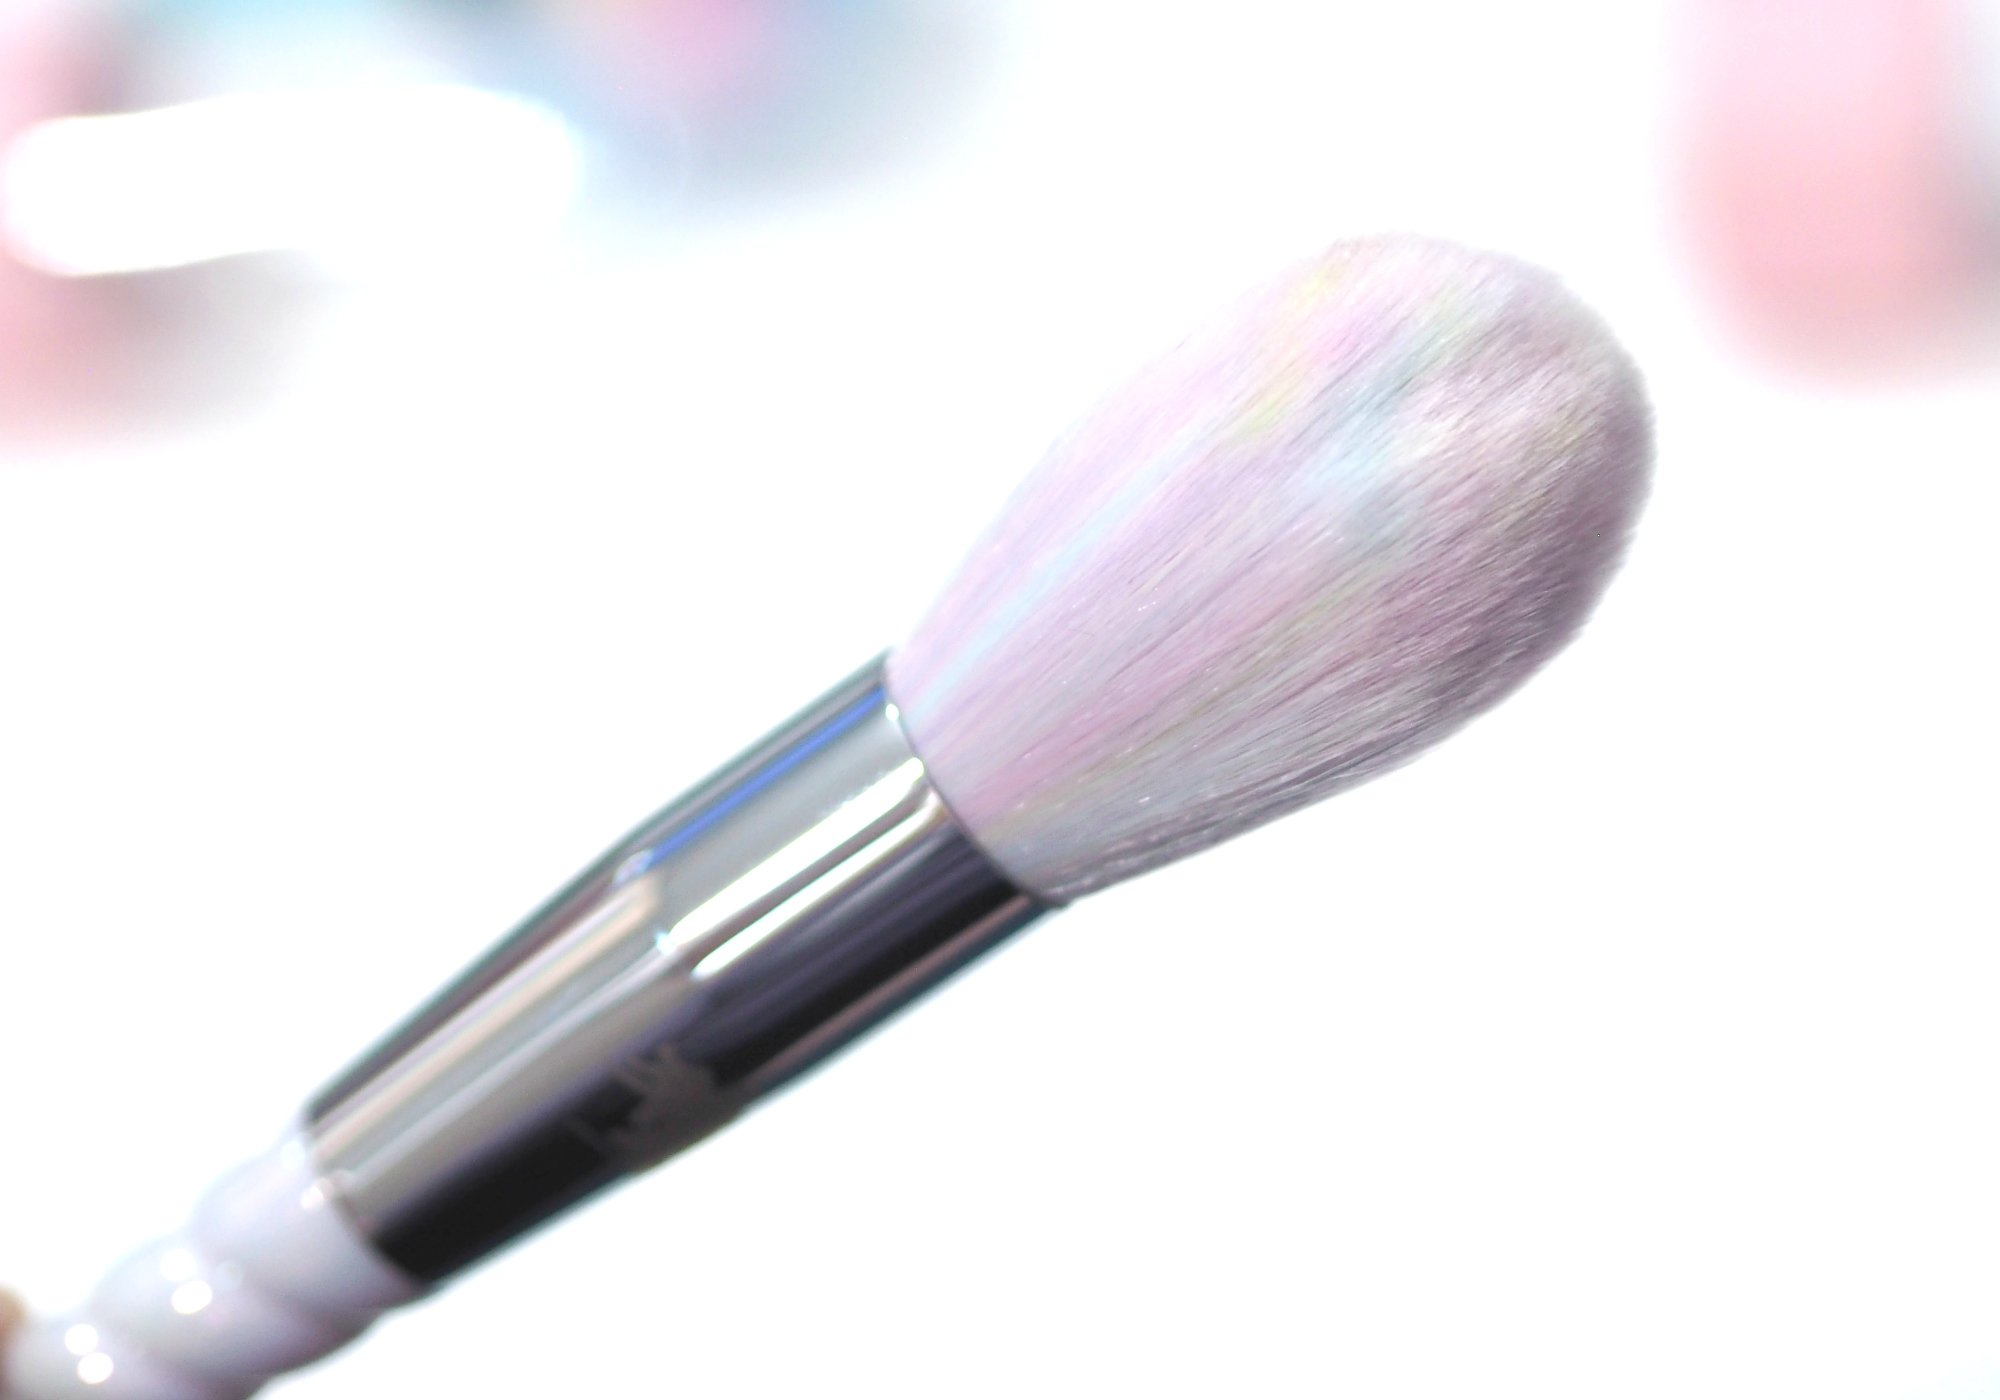 Unicorn Cosmetics Unicorn Makeup Brushes ft Whisp Me Away and Buff Up Review